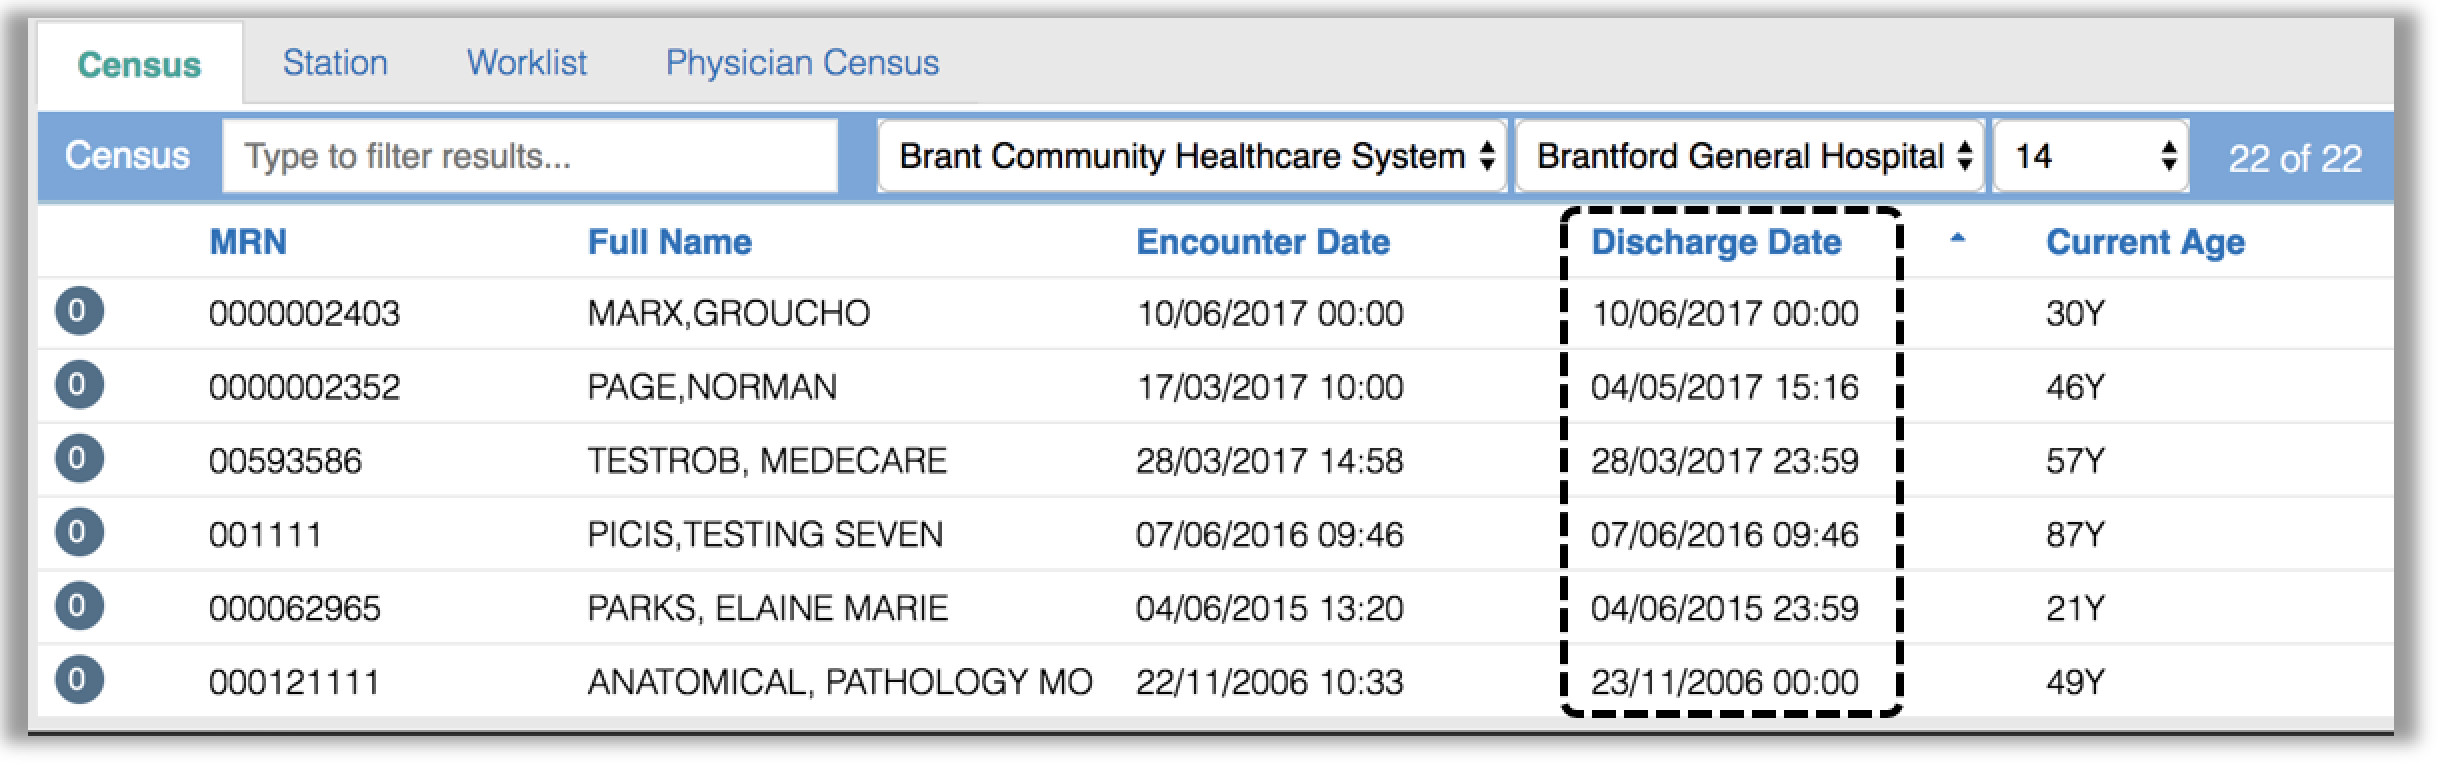 Image showing how to search for the discharge date for the patient list